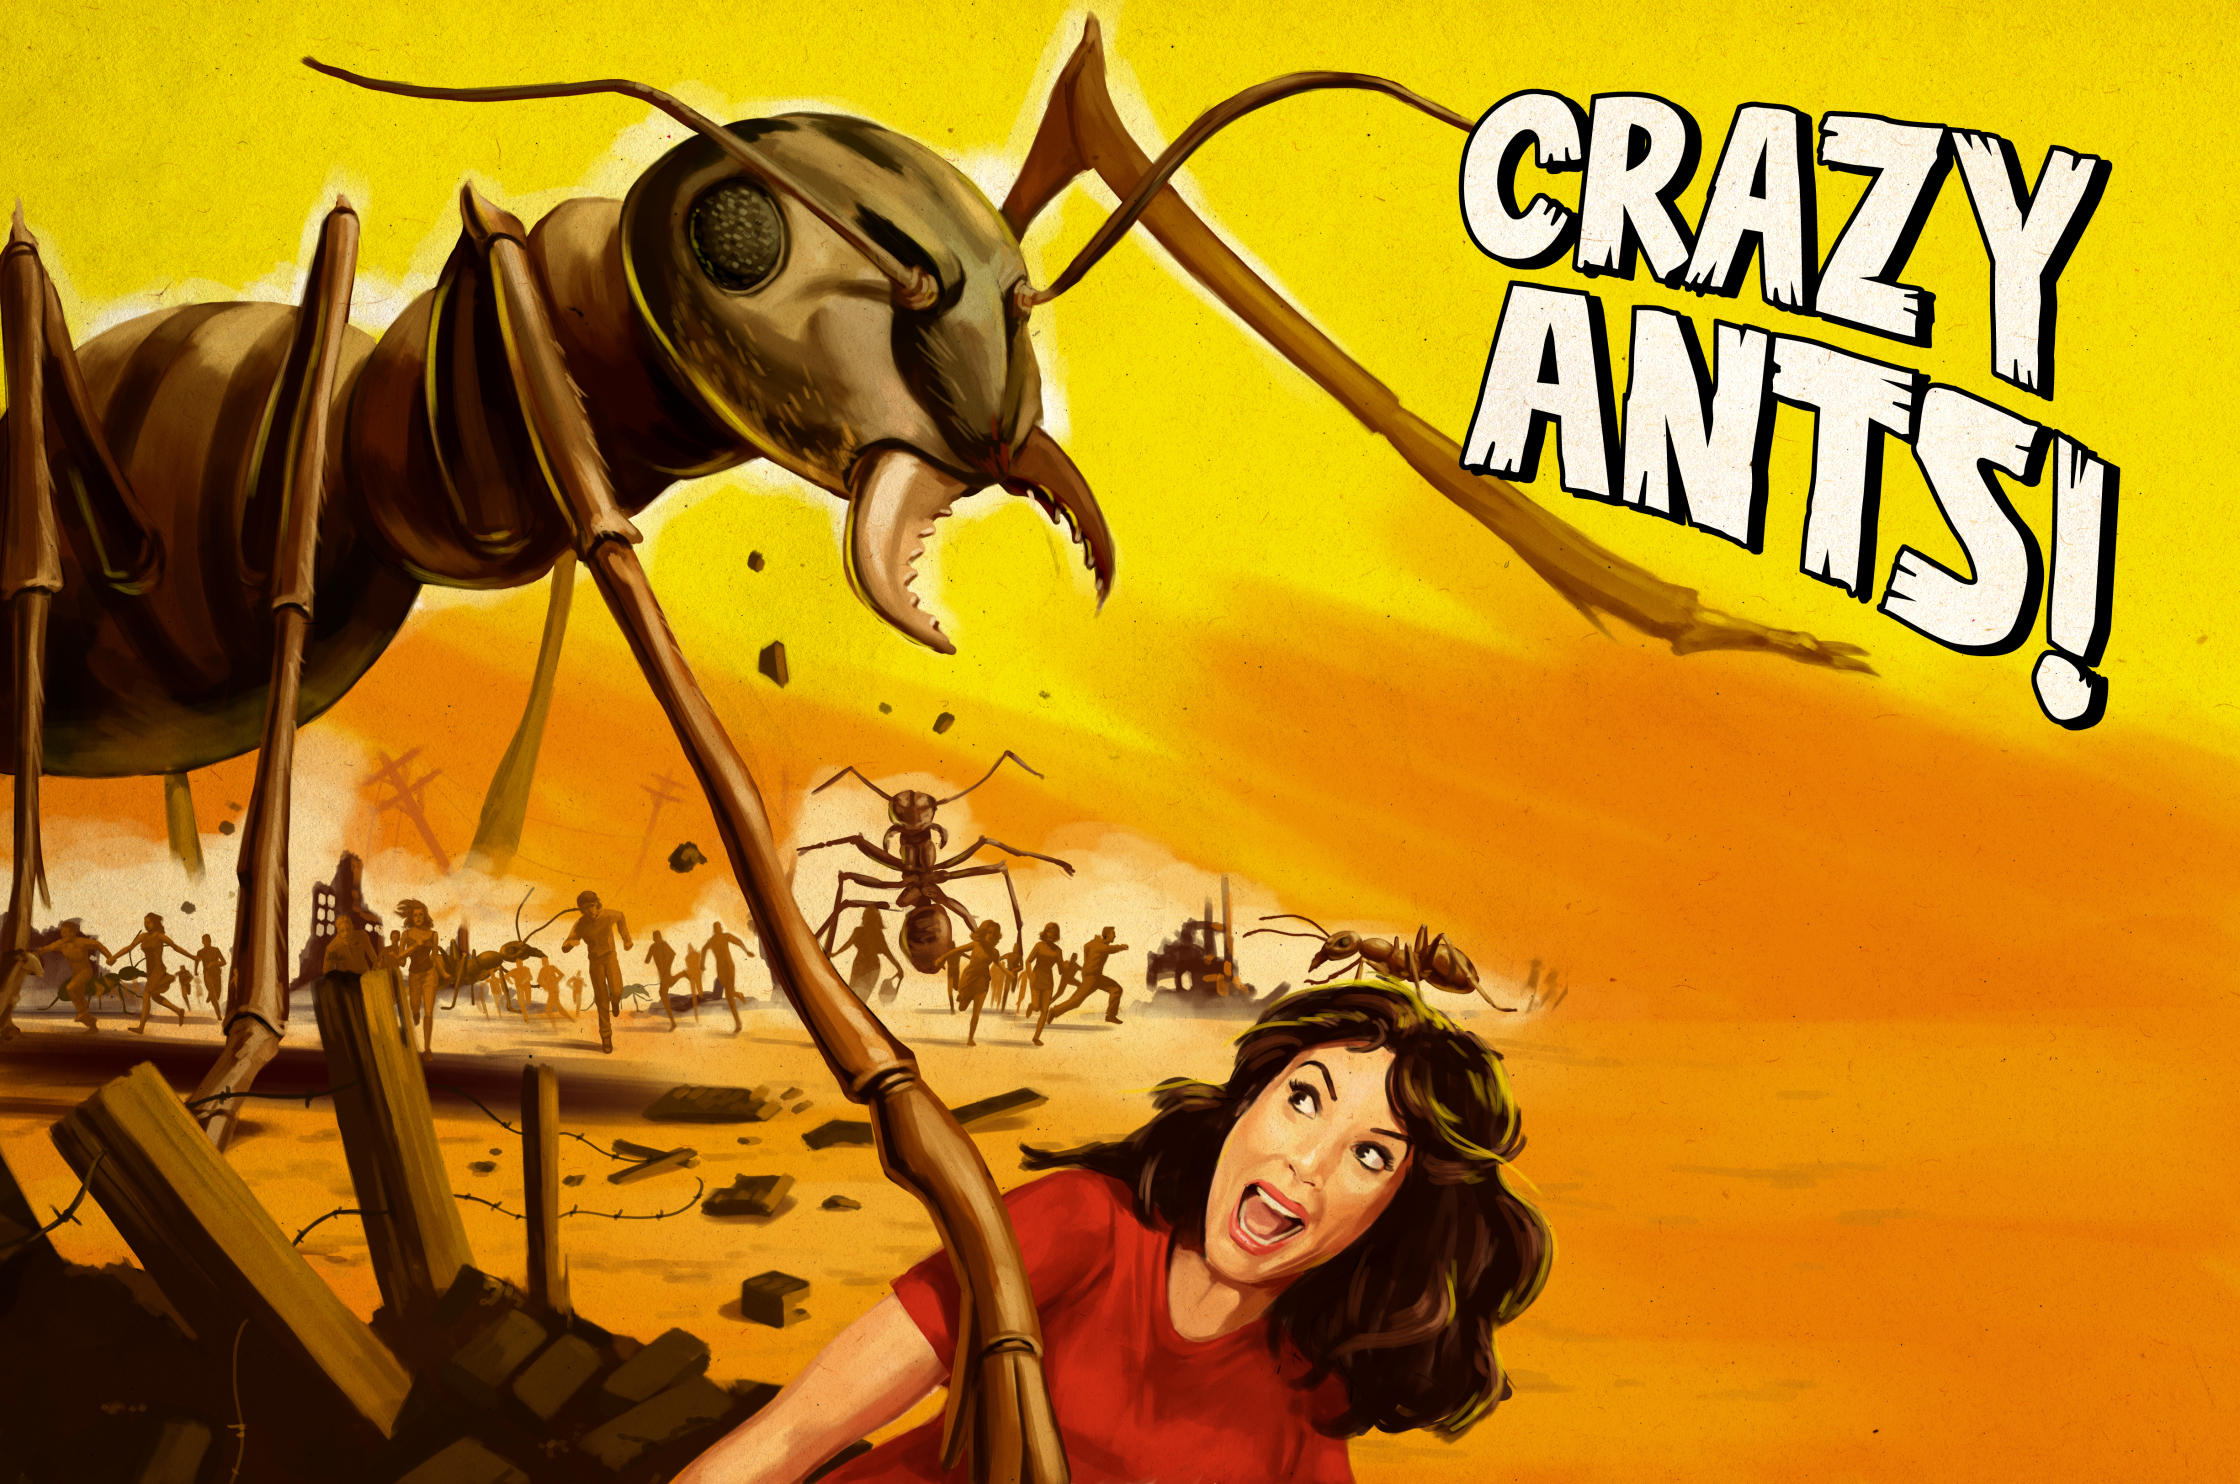 Atlanta Magazine Crazy Ants